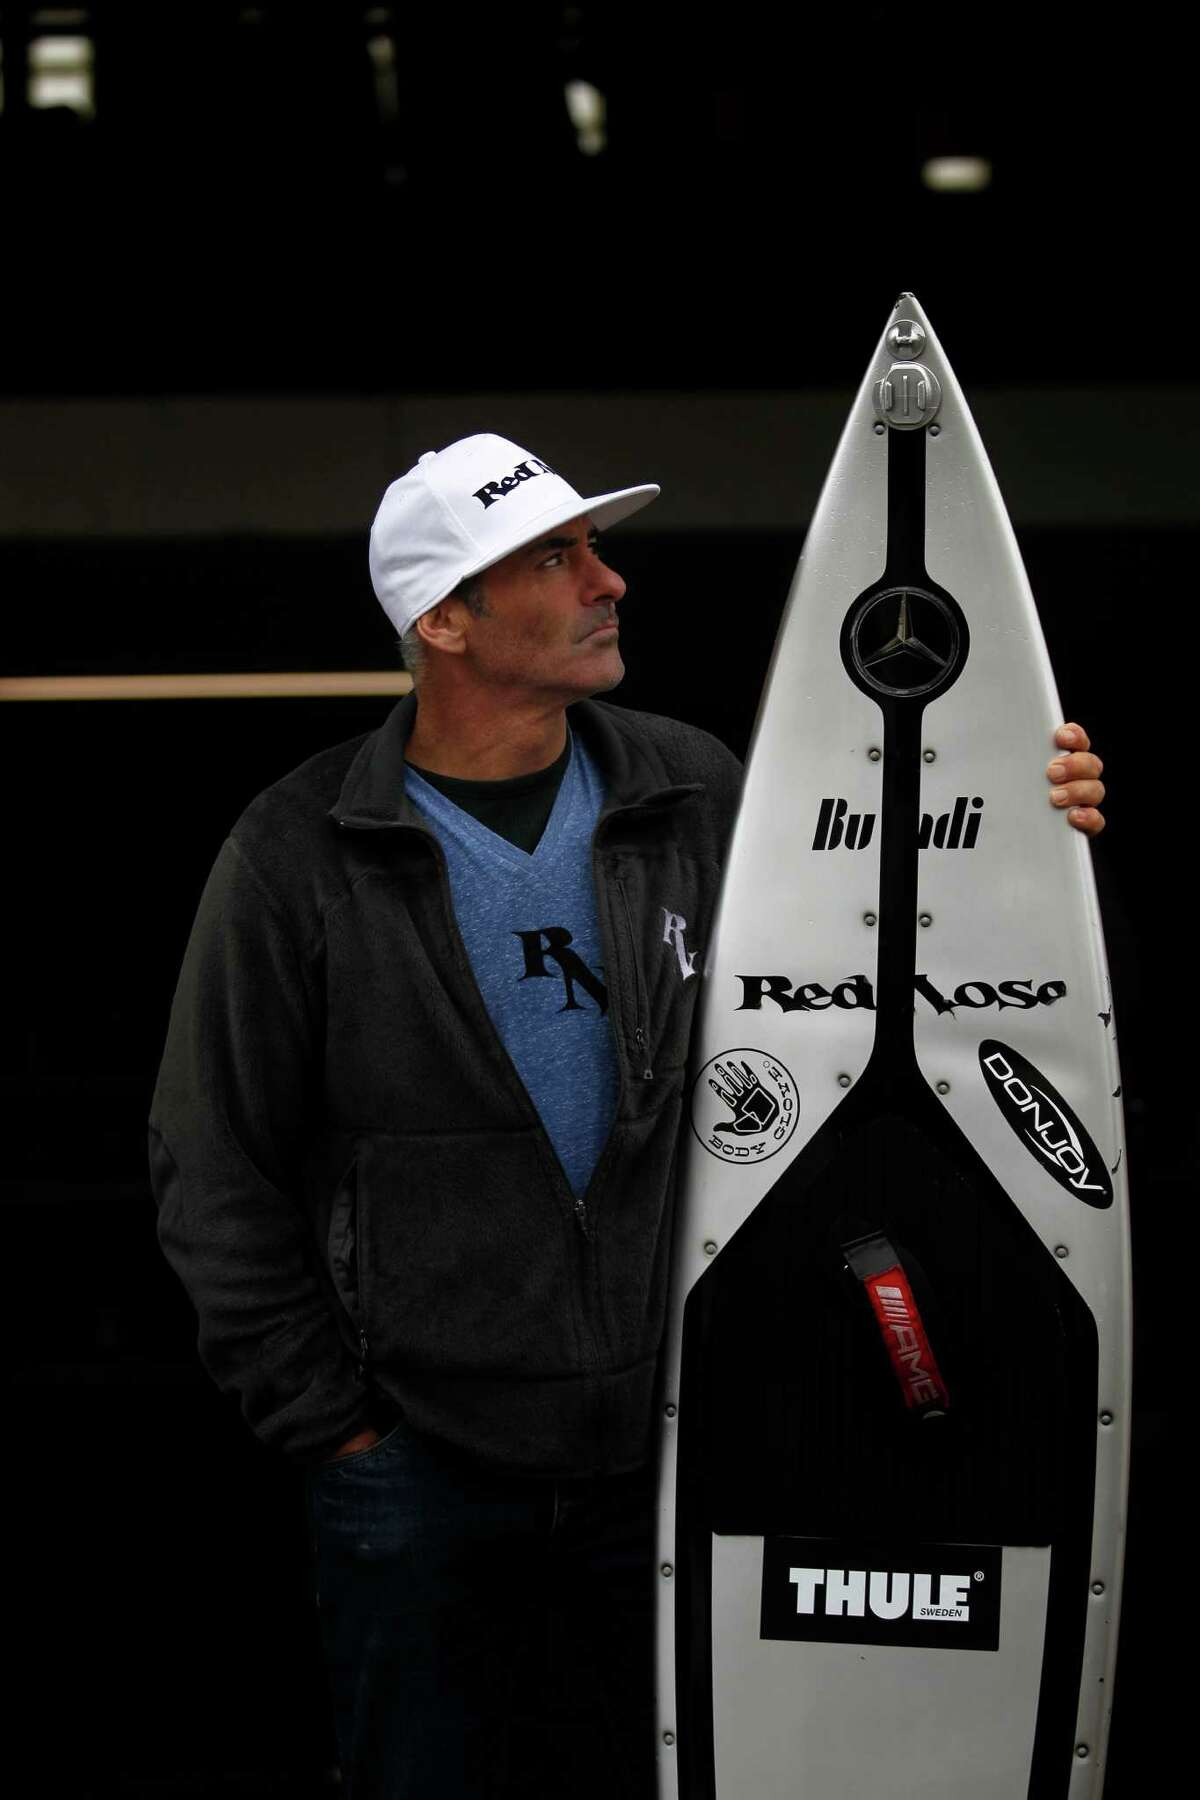 US surfer Garrett McNamara looks at his surfboard while he is interviewed by a Portuguese TV channel after a tow-in surfing session at the Praia do Norte or North beach, in Nazare, Portugal, Friday, Dec. 12, 2014. McNamara set a world record for the largest wave surfed when he rode a 23.7 metre wave (78-foot) in Nazare in 2011.